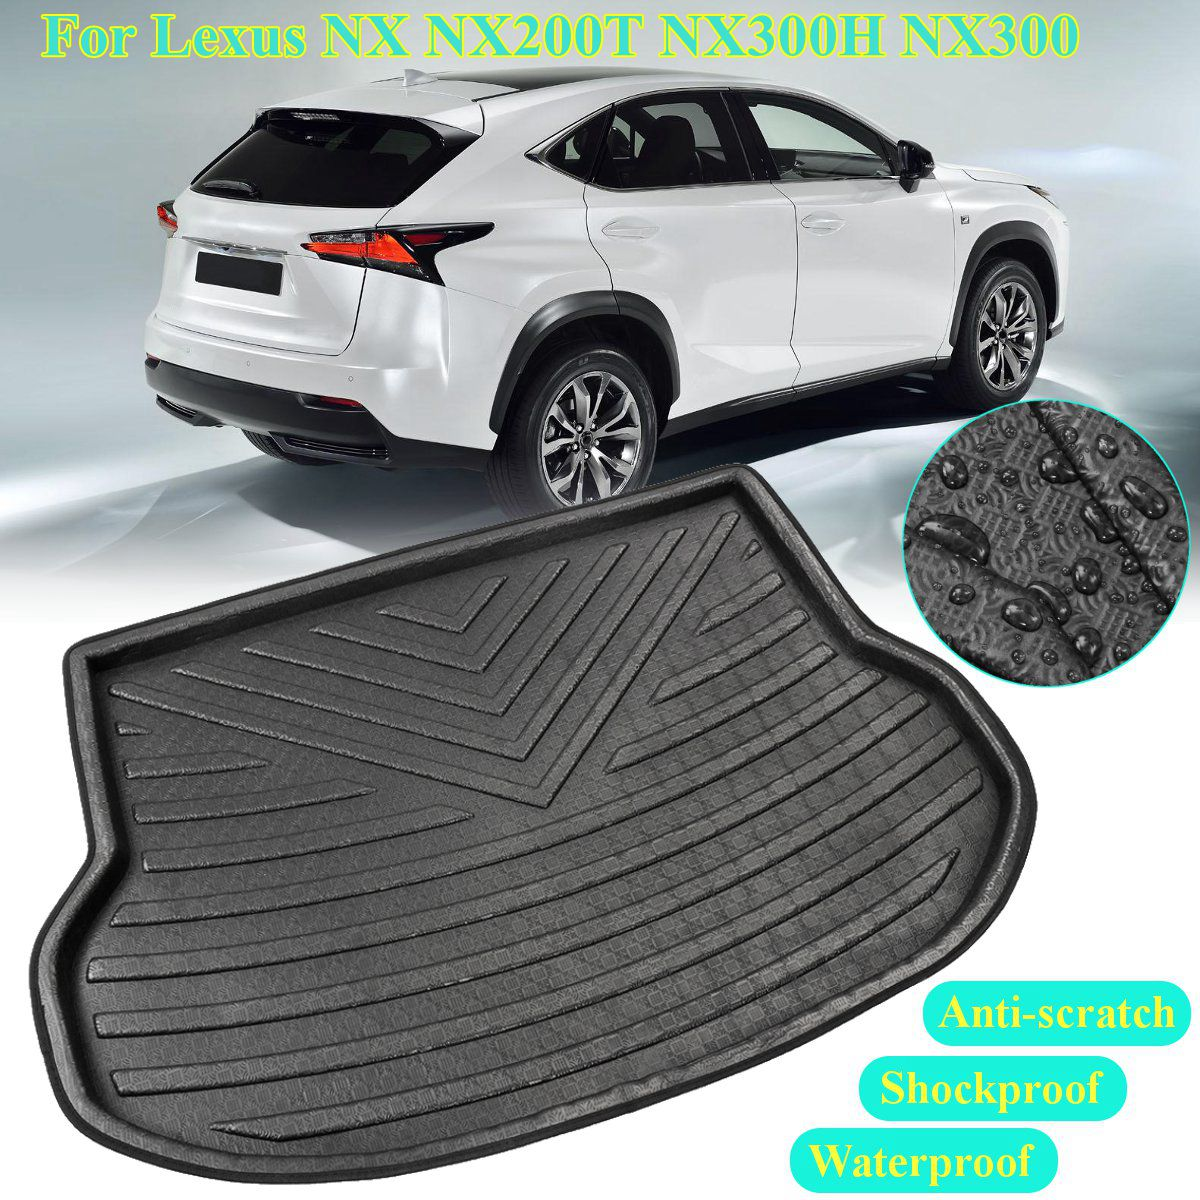 Accessories Cargo Boot Liner for <font><b>Lexus</b></font> NX NX200T <font><b>NX300H</b></font> NX300 2015 2016 2017 2018 Rear Trunk Mat Floor Tray Carpet Mud Kick Pad image